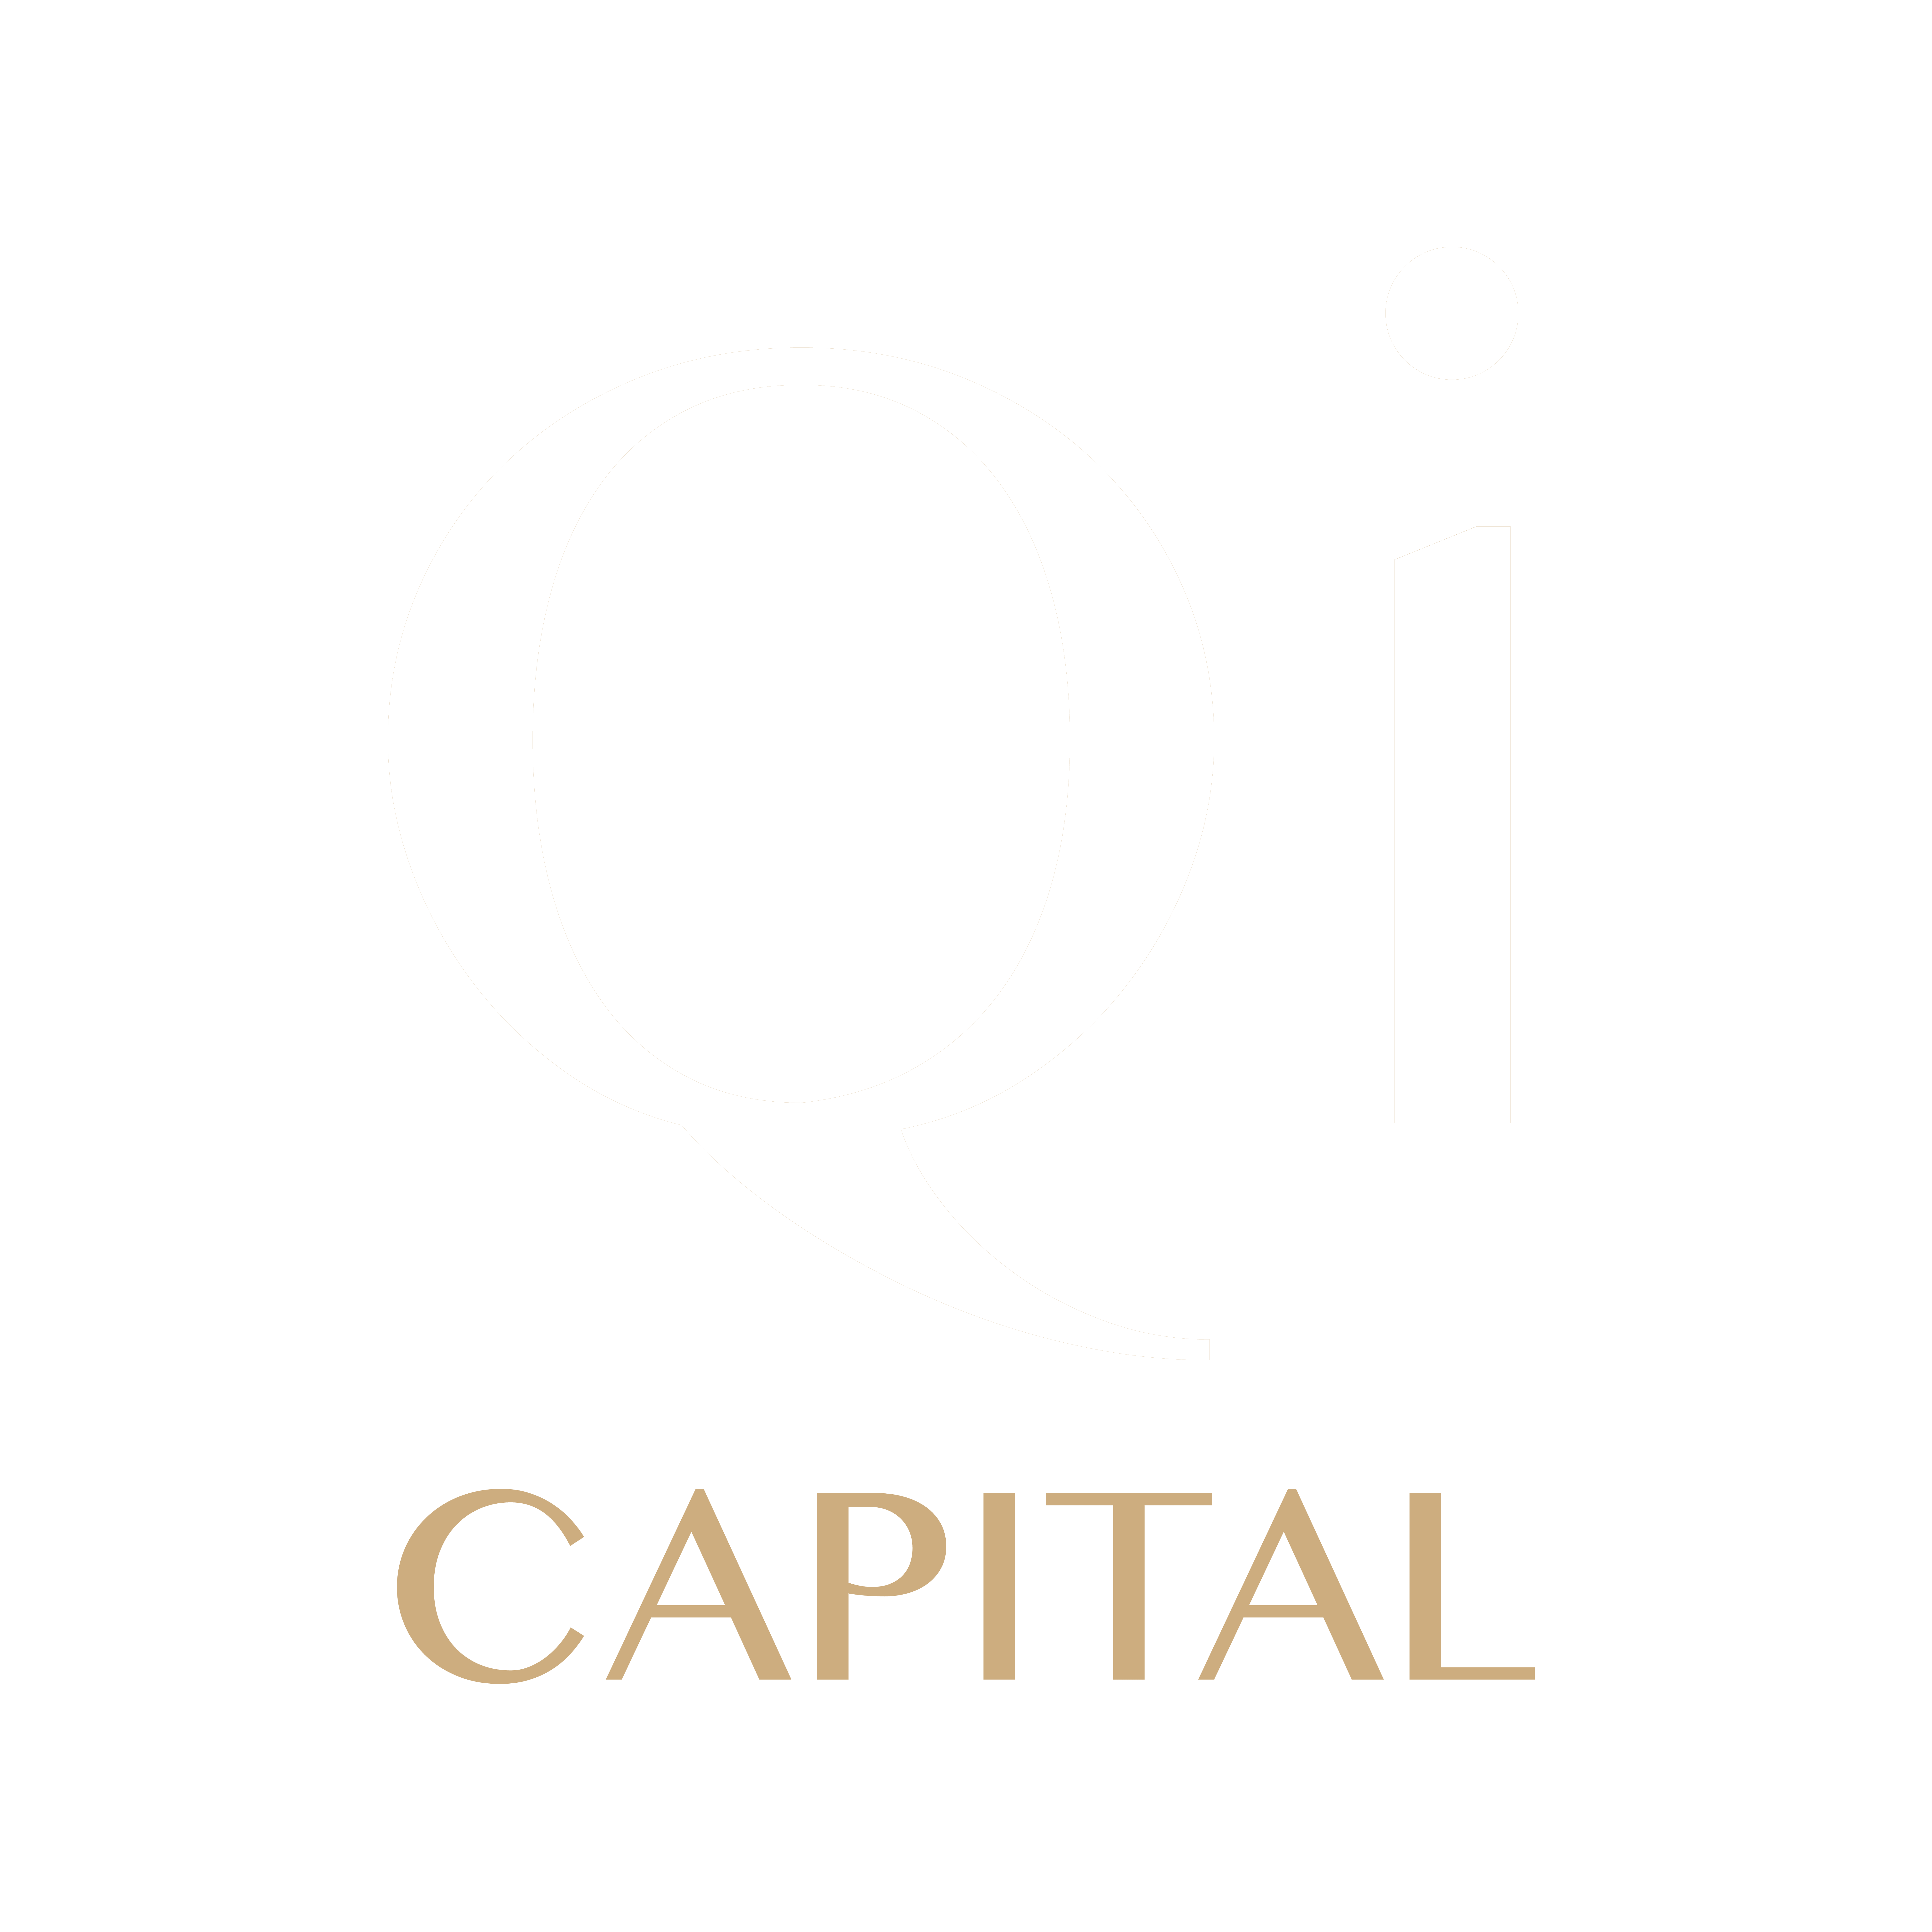 QiCapital - Finding Gems in Crypto Space